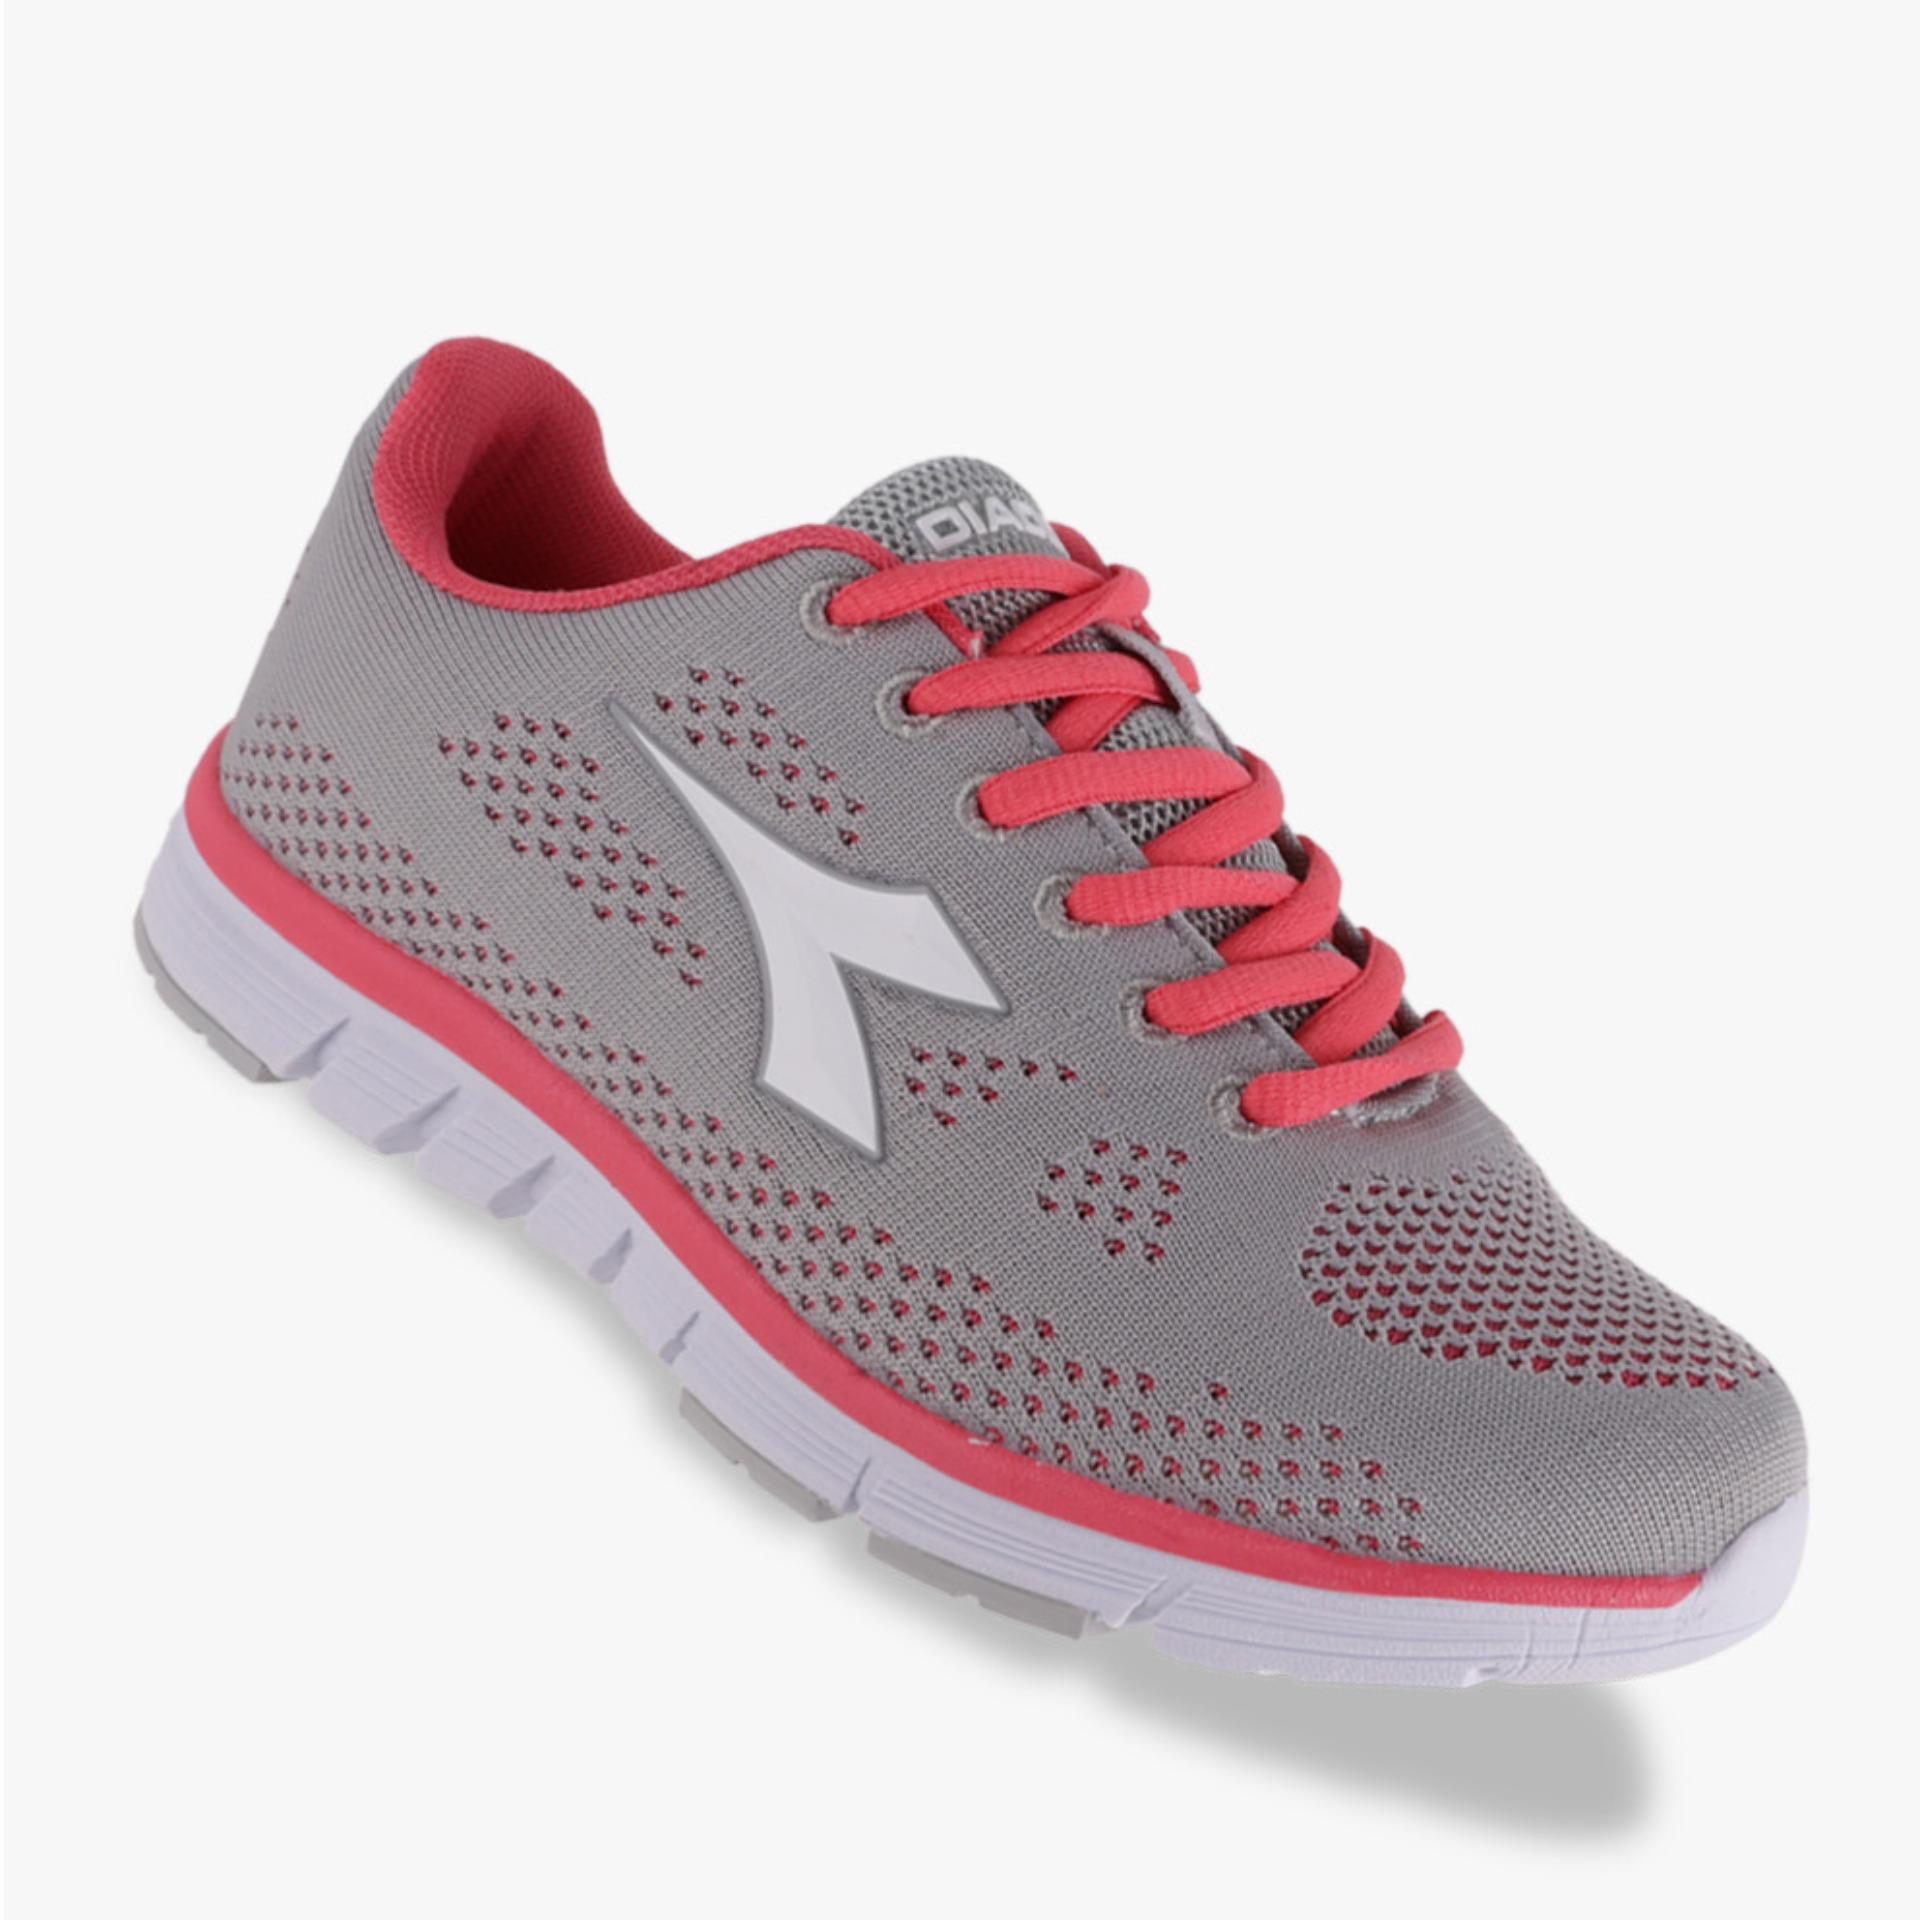 Diadora Geta Women's Fitness Shoes - Abu-Abu